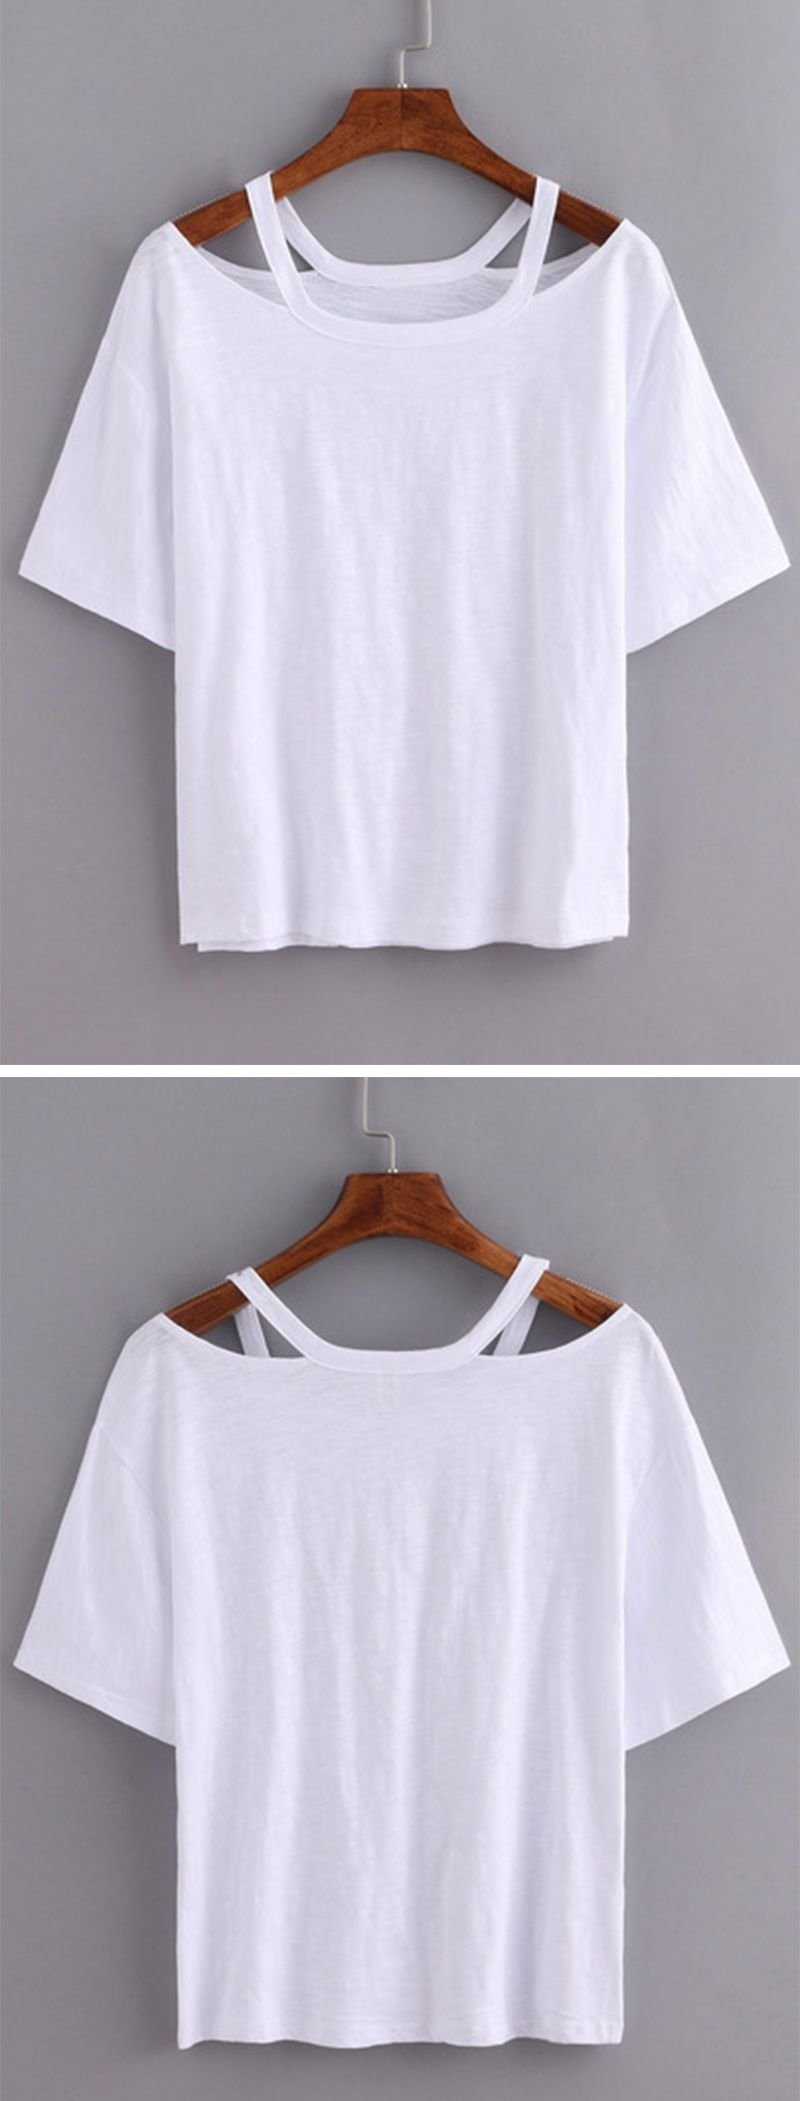 10 Nice Diy T Shirt Cutting Ideas cutout loose fit white t shirt with 3 from jdzigner www jdzigner 6 2021